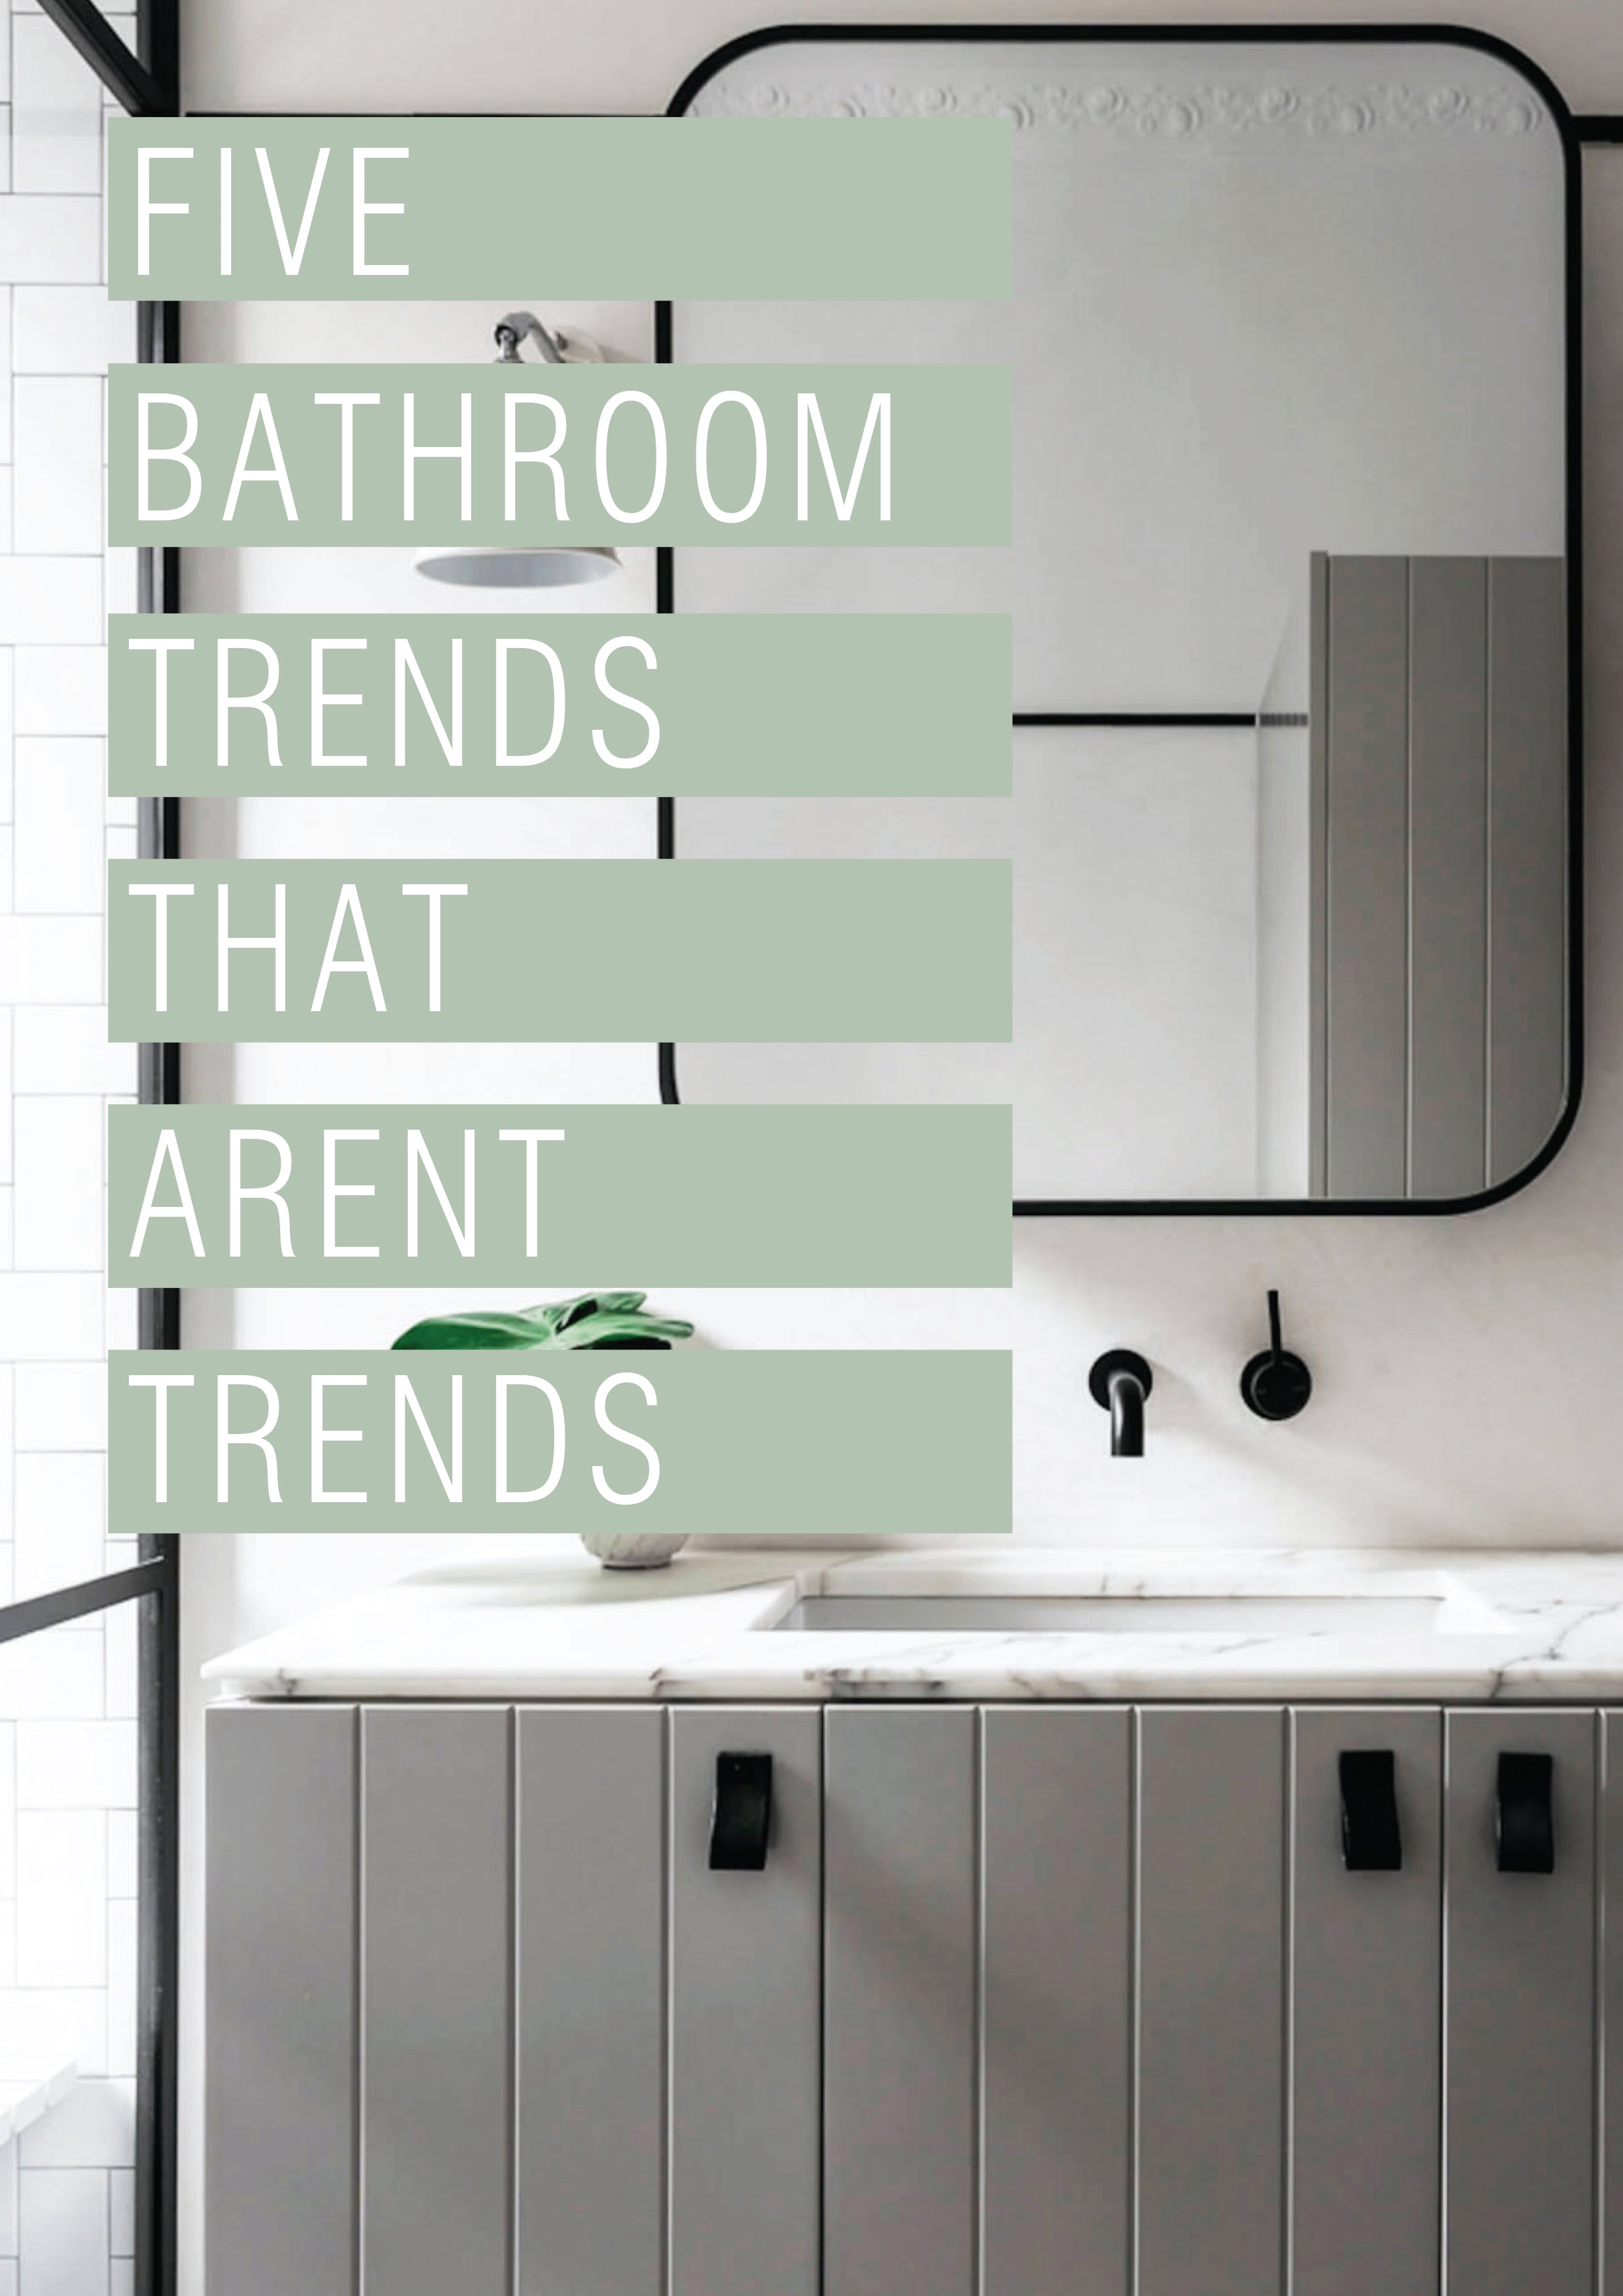 Weekly Blog | 5 Bathroom Trends that aren't Trends | - 12.08.2019